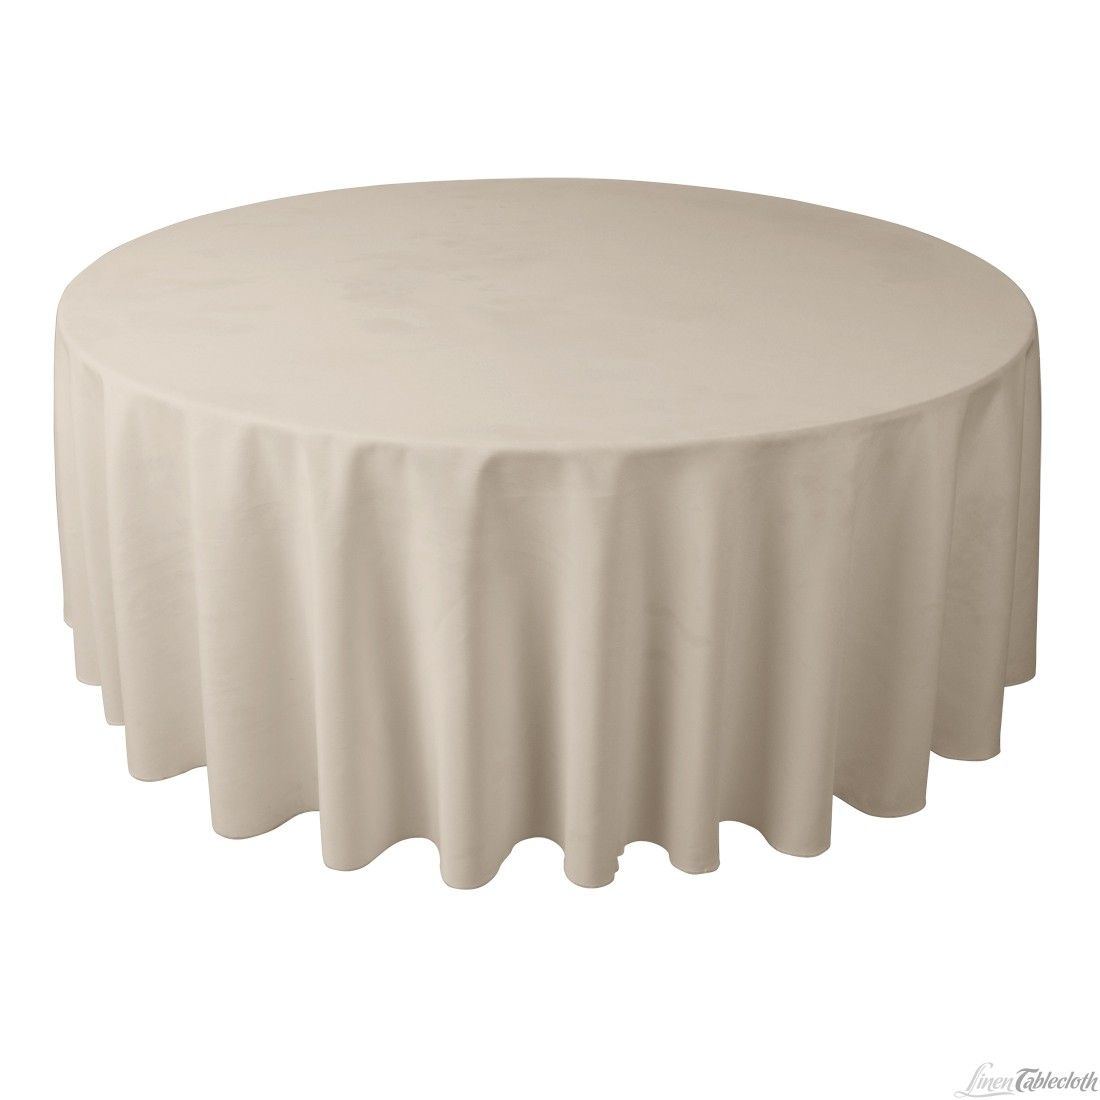 108 Inch Round Polyester Tablecloth Beige At Linentablecloth Table Cloth Cozy Home Decorating Round Tablecloth